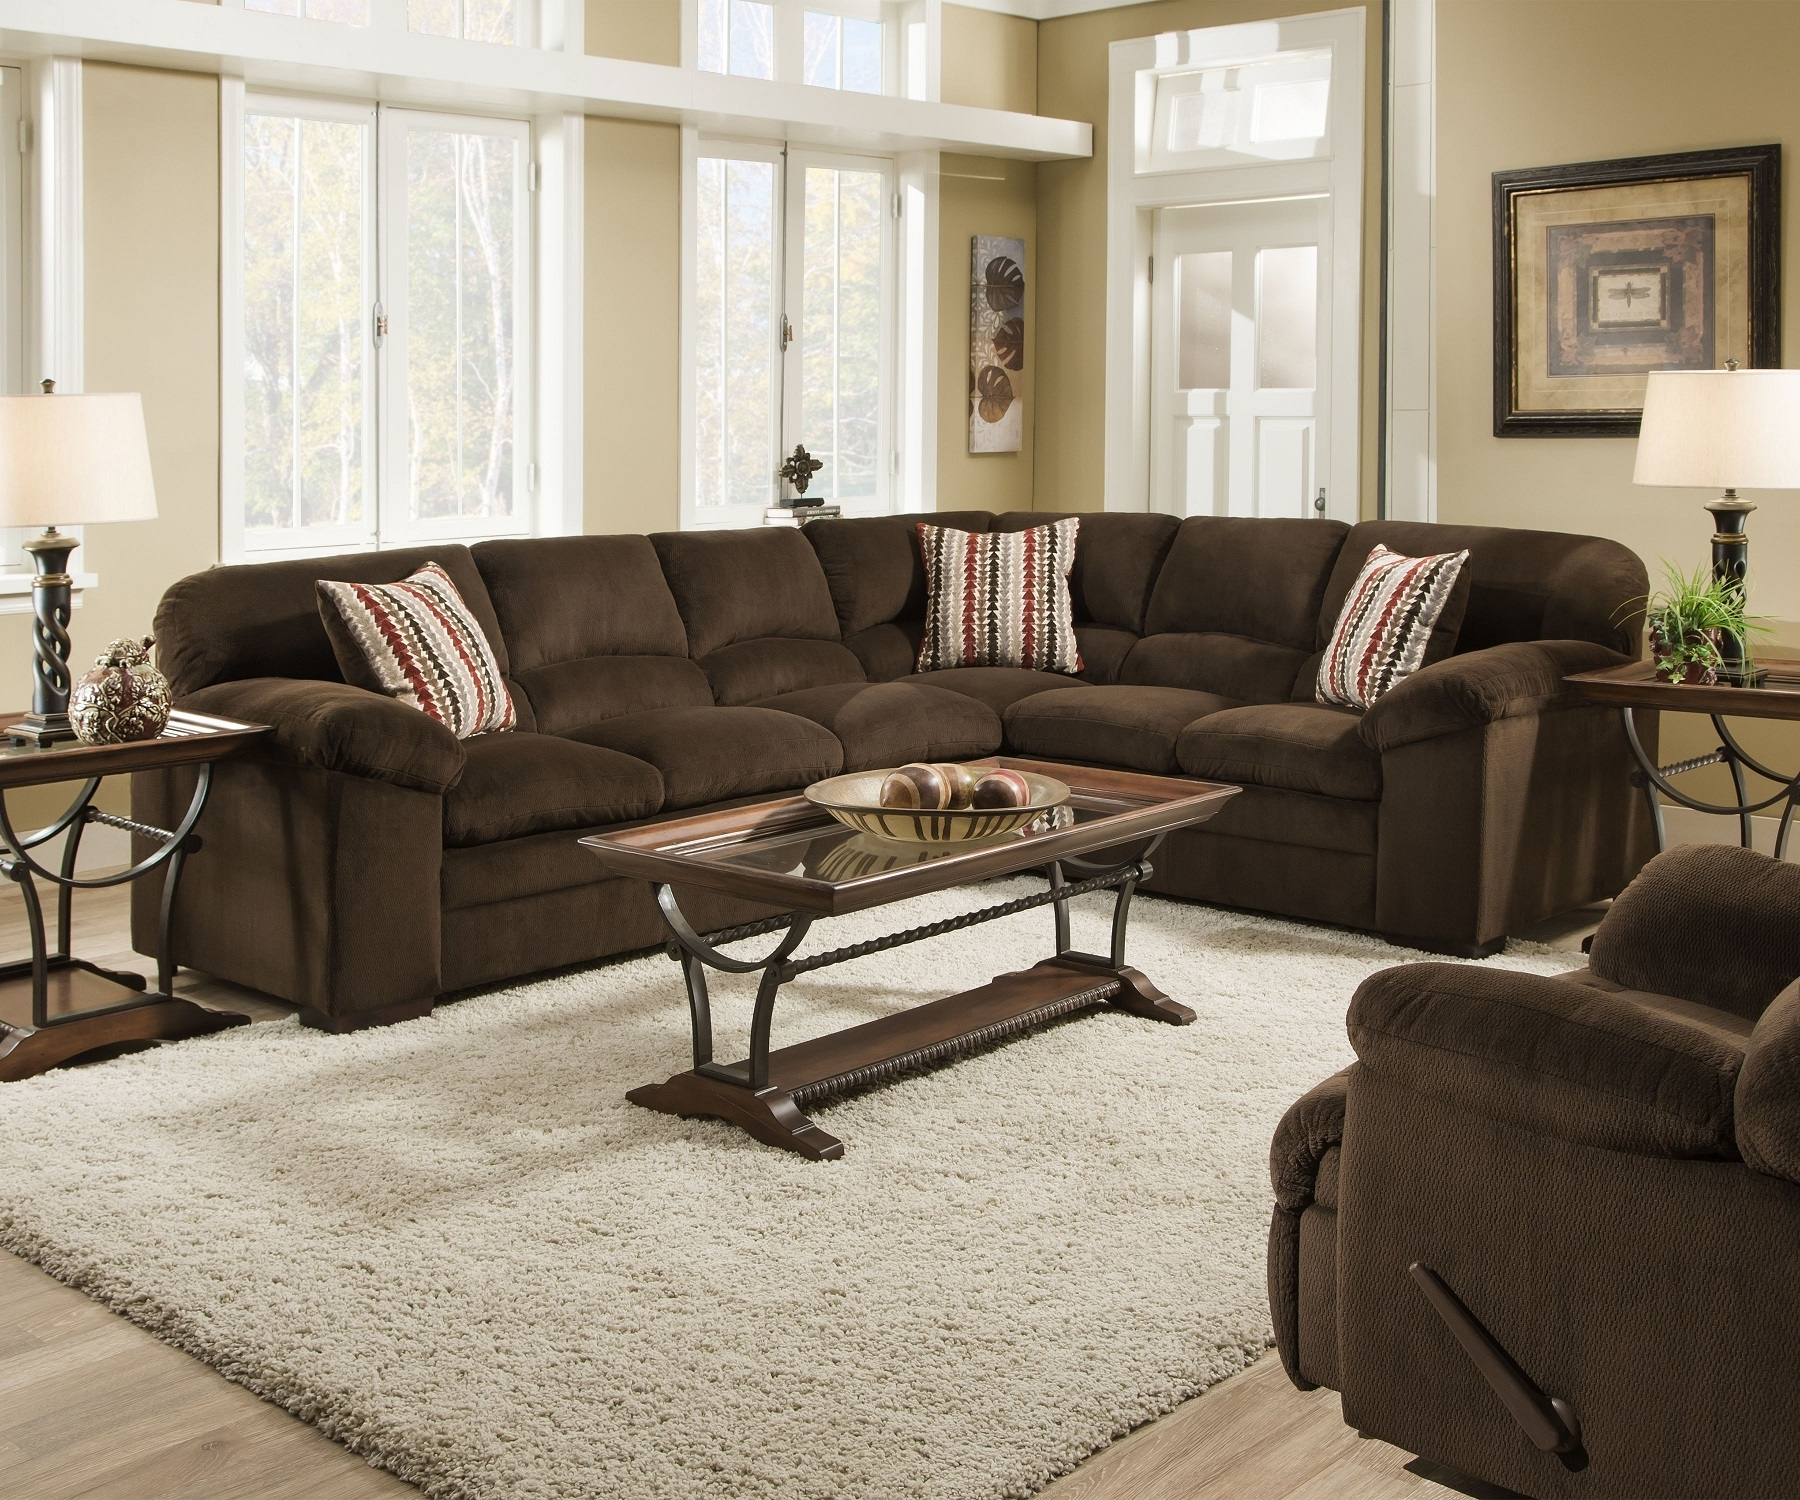 Favorite Chocolate Sectional Sofas For Simmons Dover 8043 Chocolate Ultra Plush Soft Seating Made In The Usa (View 7 of 15)